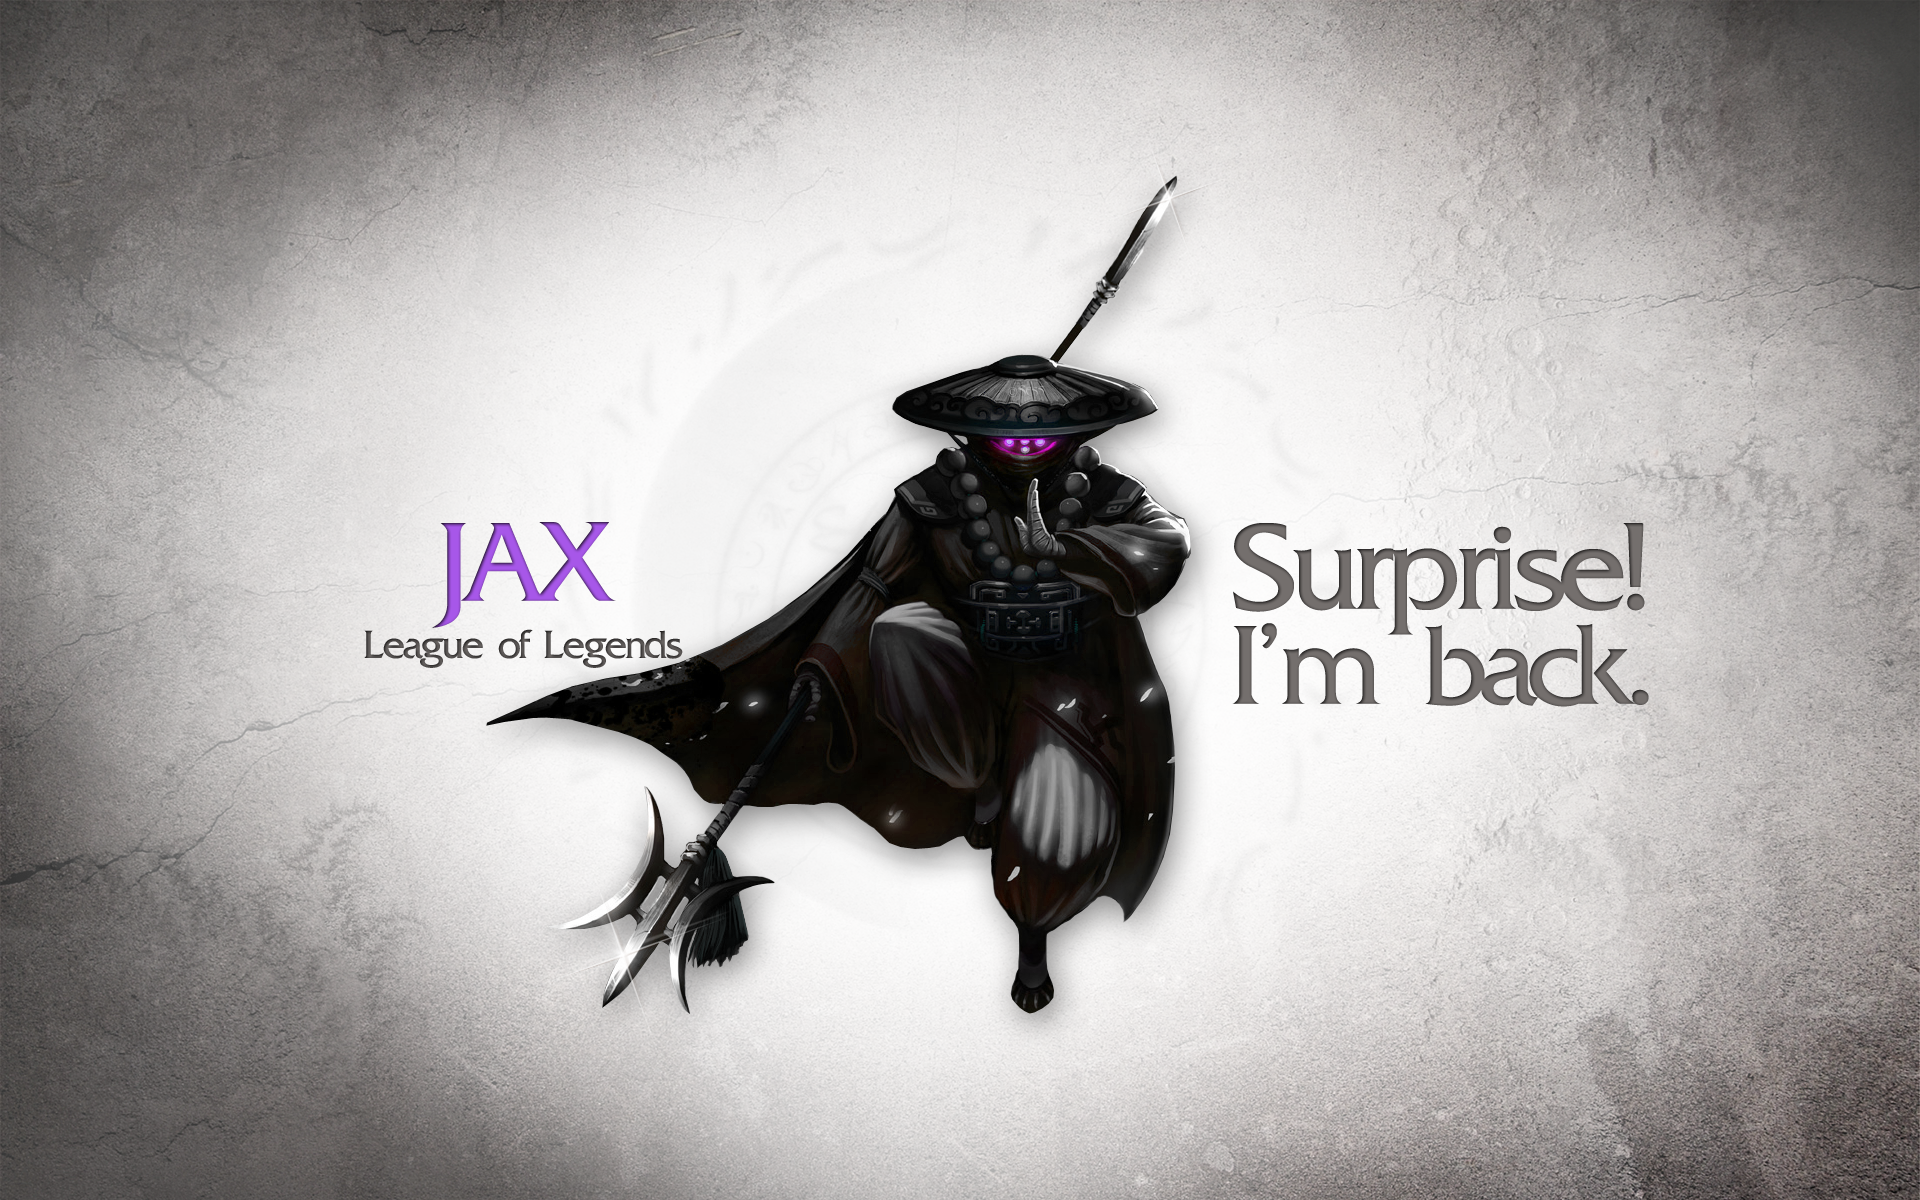 league_of_legends_wallpaper___jax_by_desess-d5fumtx